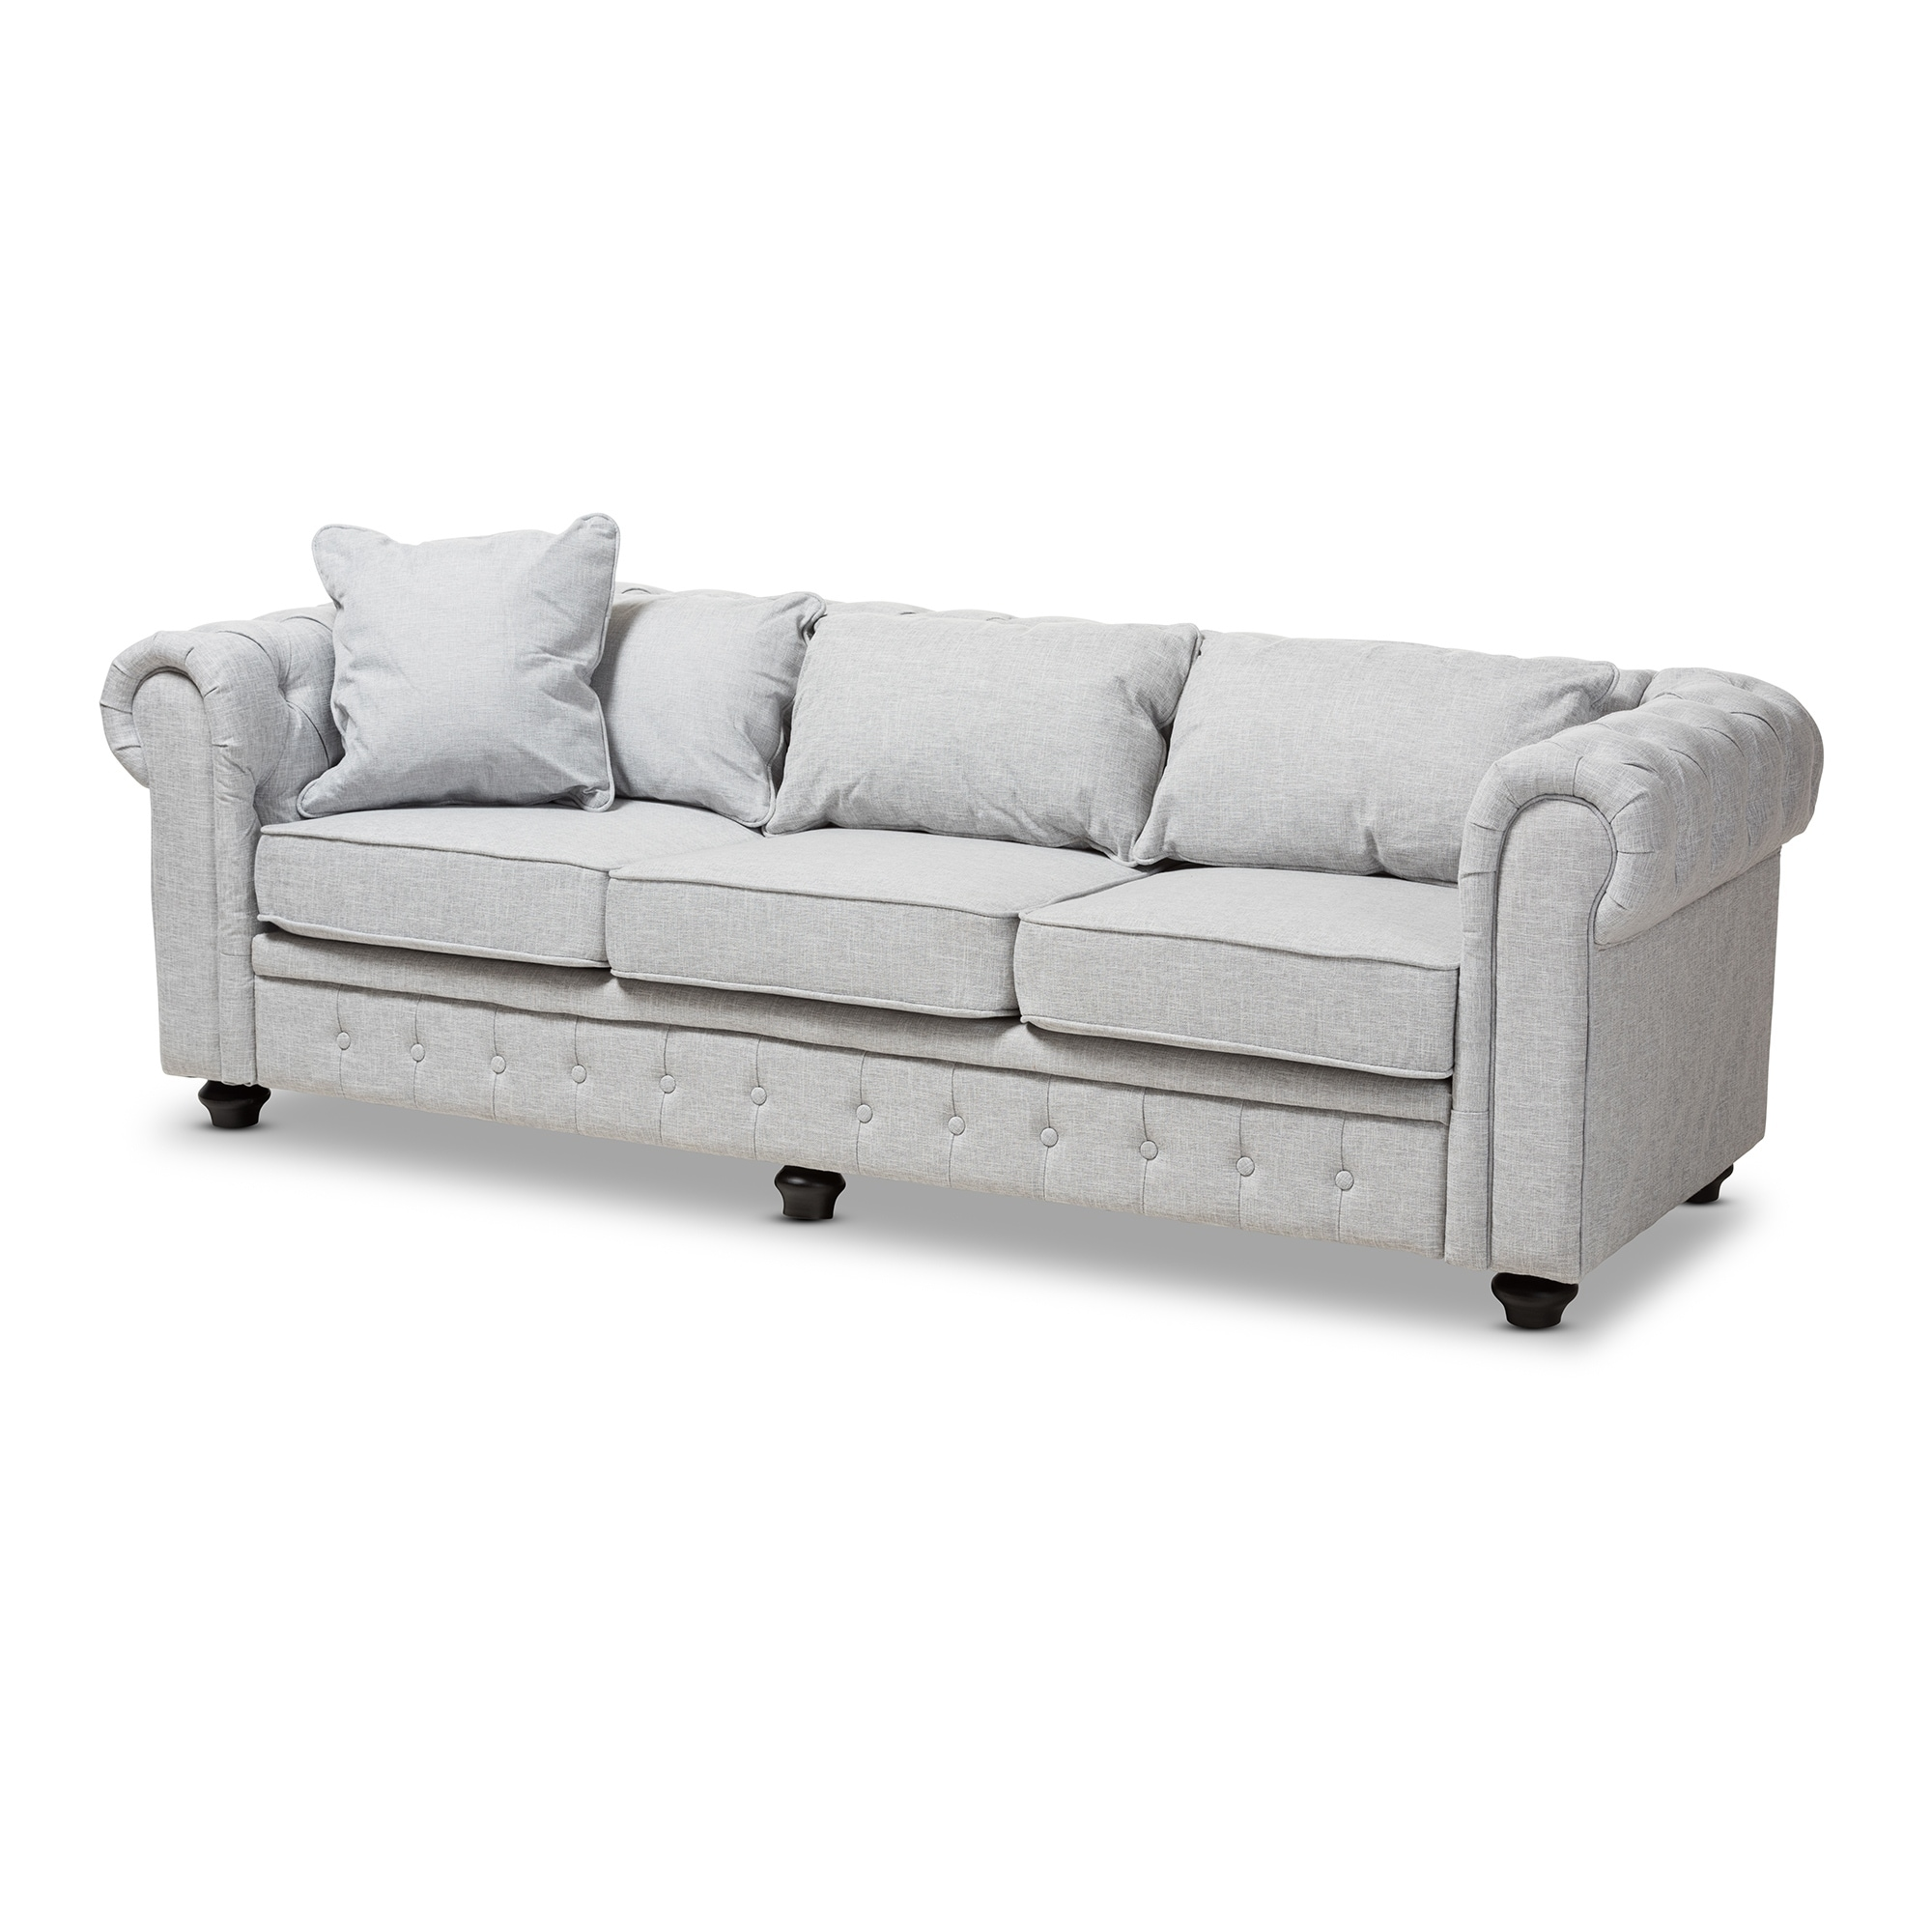 Modern Linen Chesterfield Sofa By Baxton Studio Free Shipping Today 20506530